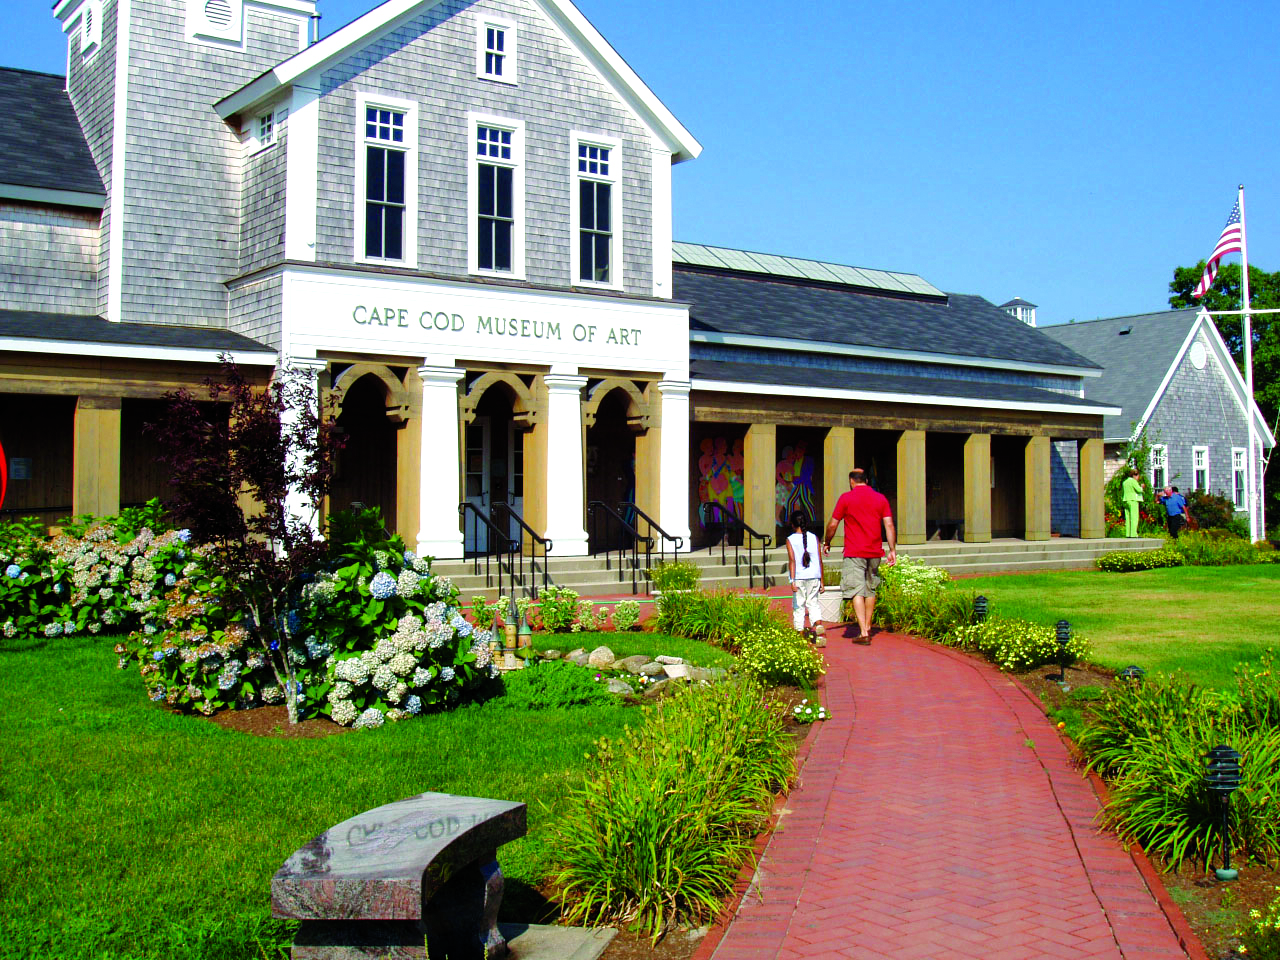 Cape Cod Museum of Art